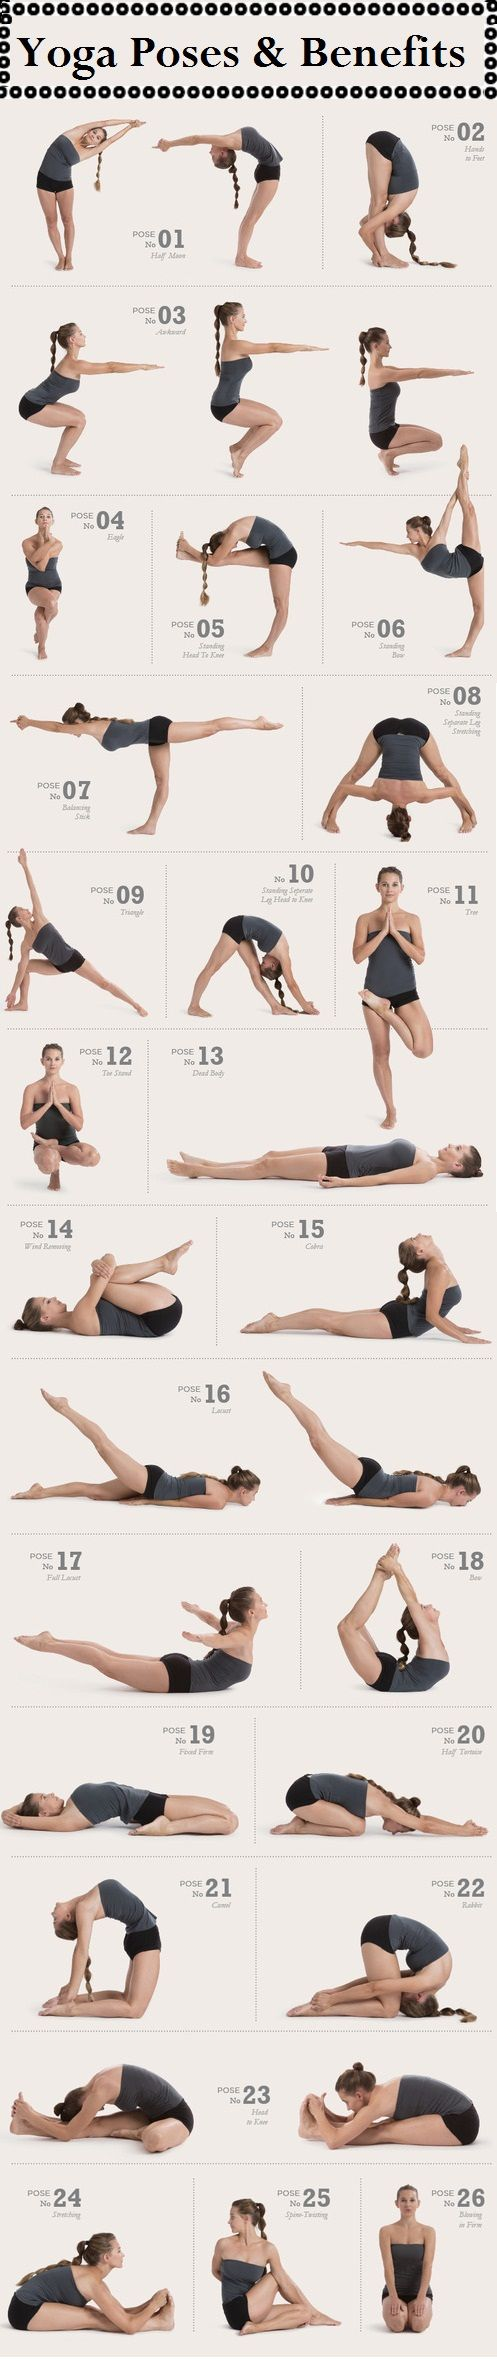 Yoga  Top yoga poses, Yoga poses, Health fitness